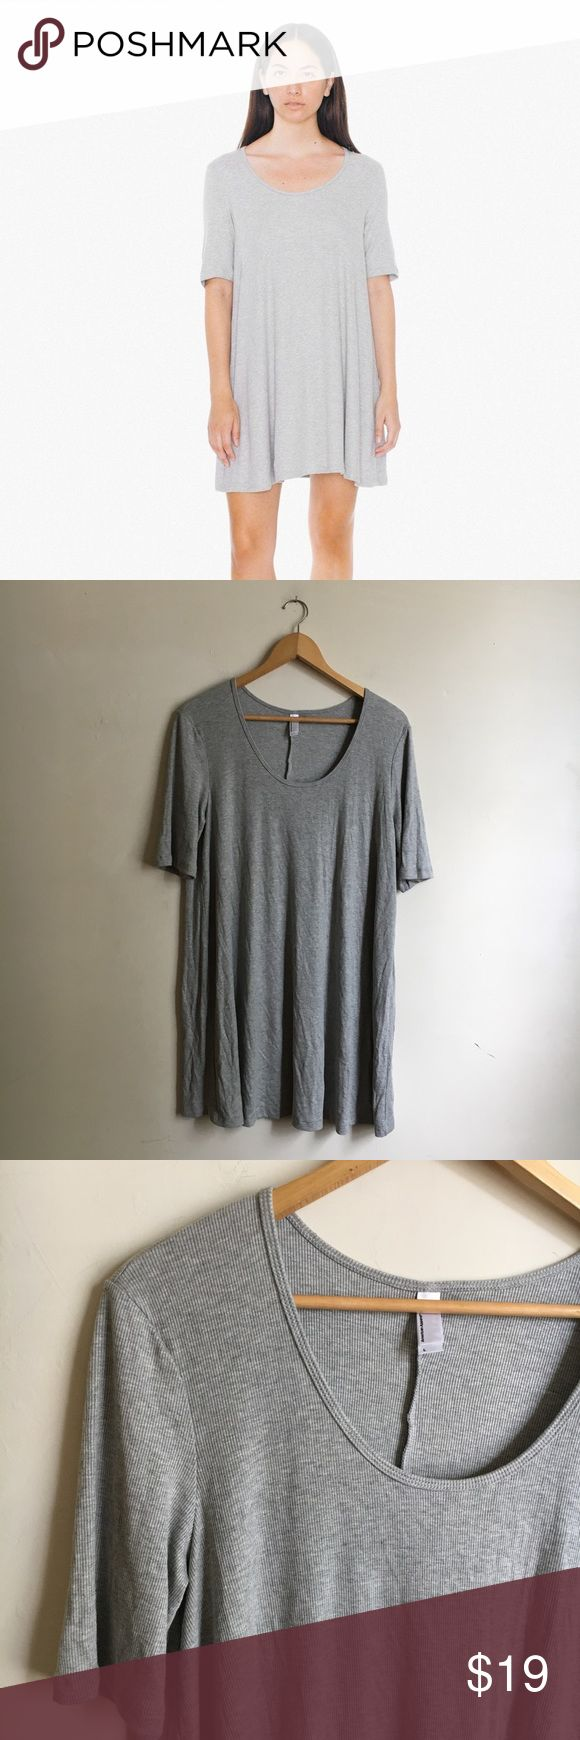 American Apparel 2x2 Ribbed T-Shirt Dress Large American Apparel 2x2 rib t-shirt dress in grey! Size large. Excellent condition- I love it but I'm too tall to be comfortable wearing it! NO TRY ONS, but I will gladly provide measurements if needed! American Apparel Dresses Mini